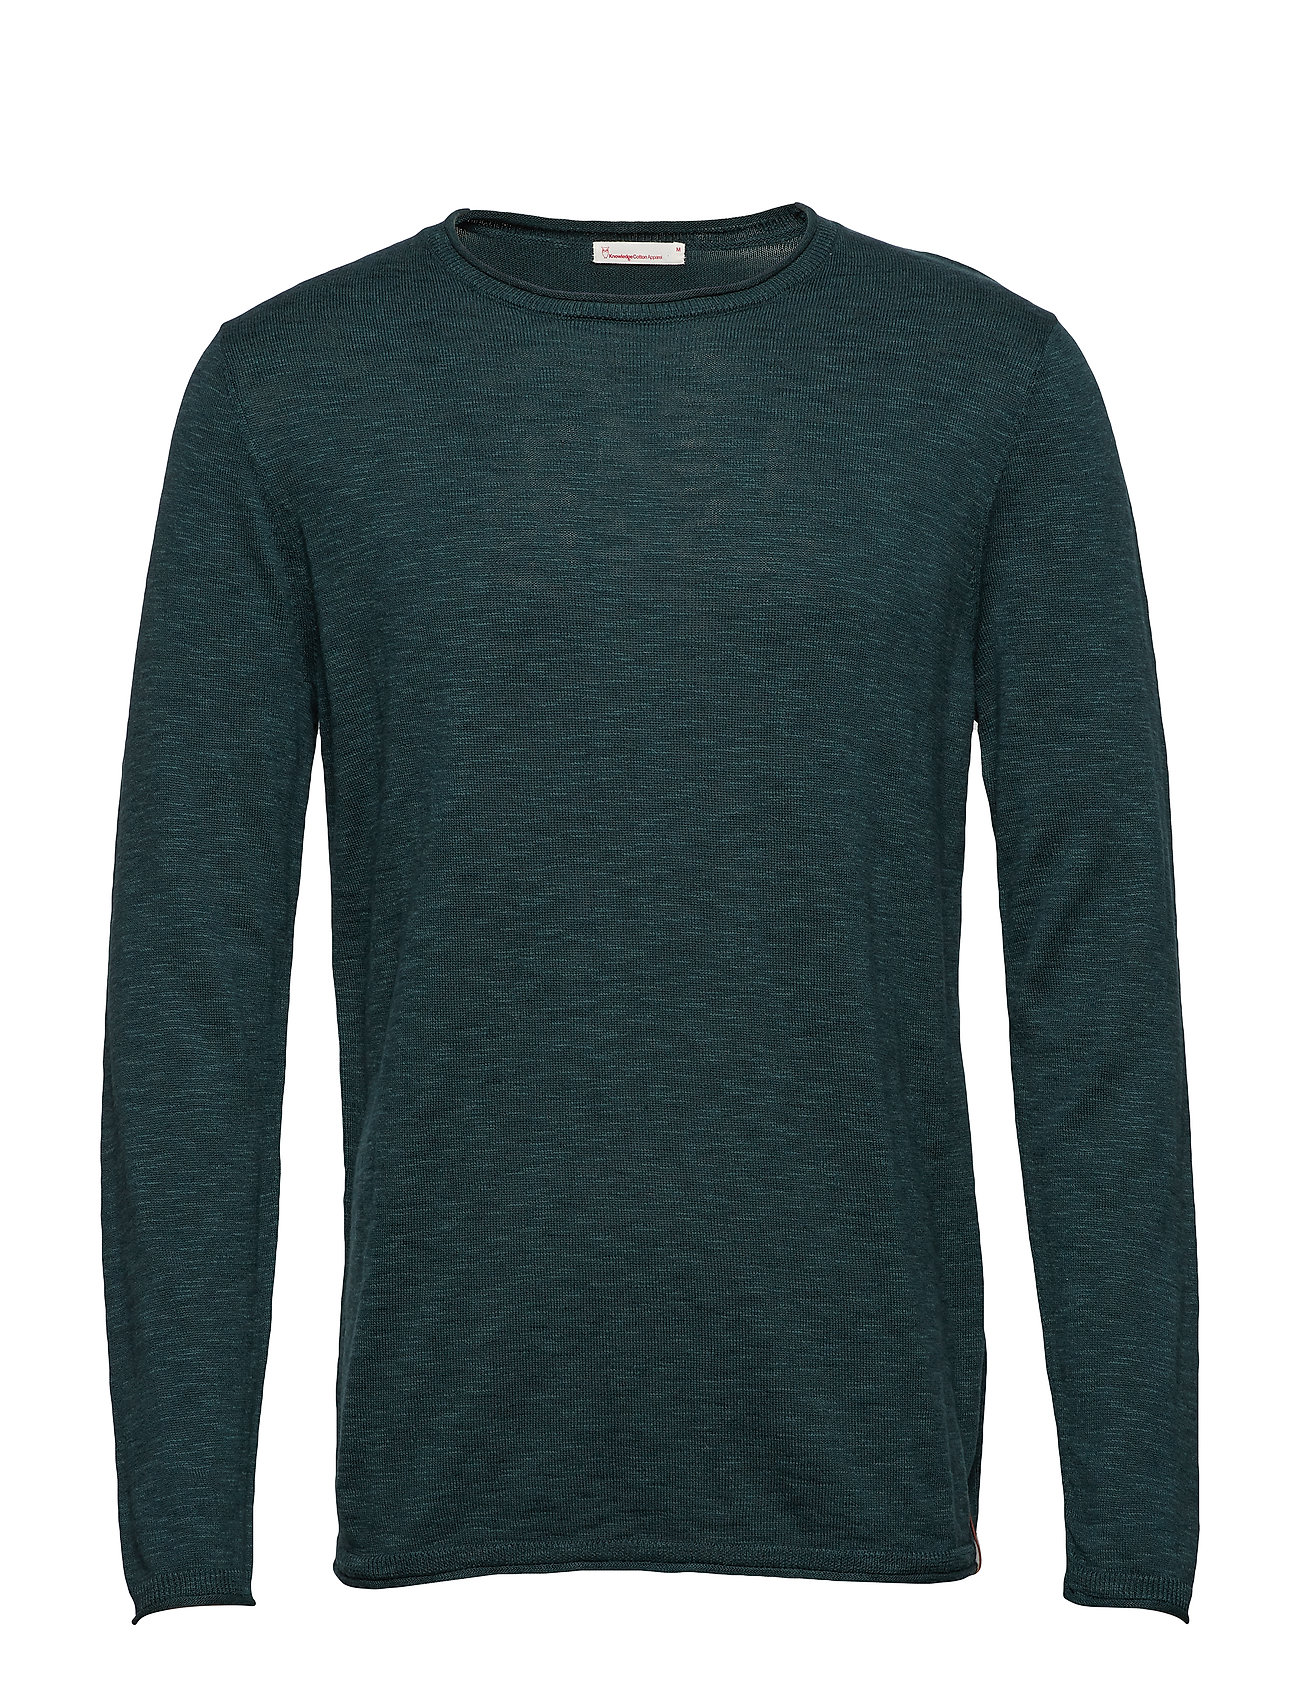 Knowledge Cotton Apparel Single knit with rool edge/Vegan - BISTRO GREEN